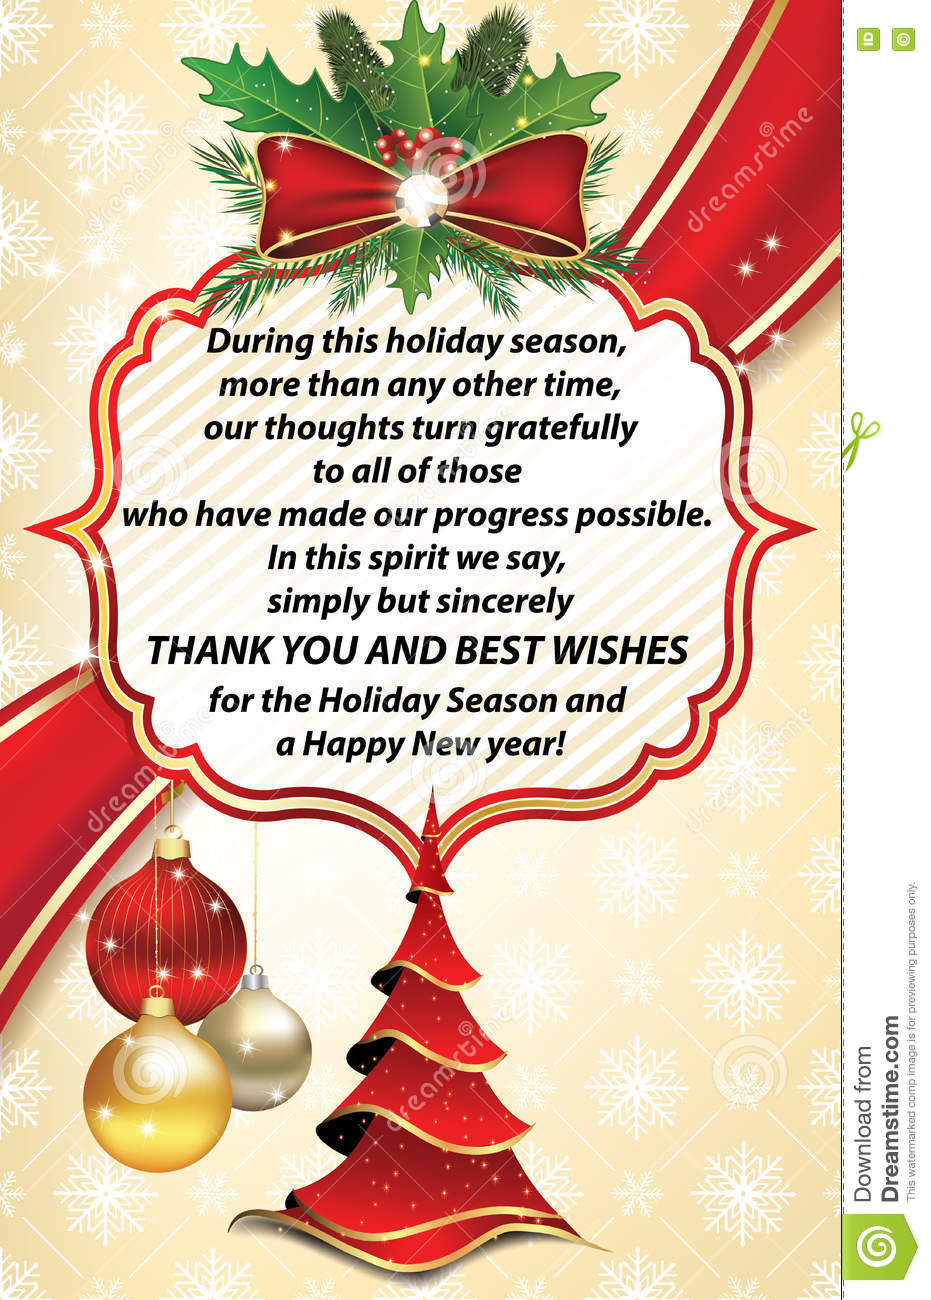 Thank you business greeting card for new year stock photo image of download thank you business greeting card for new year stock photo image of xmas m4hsunfo